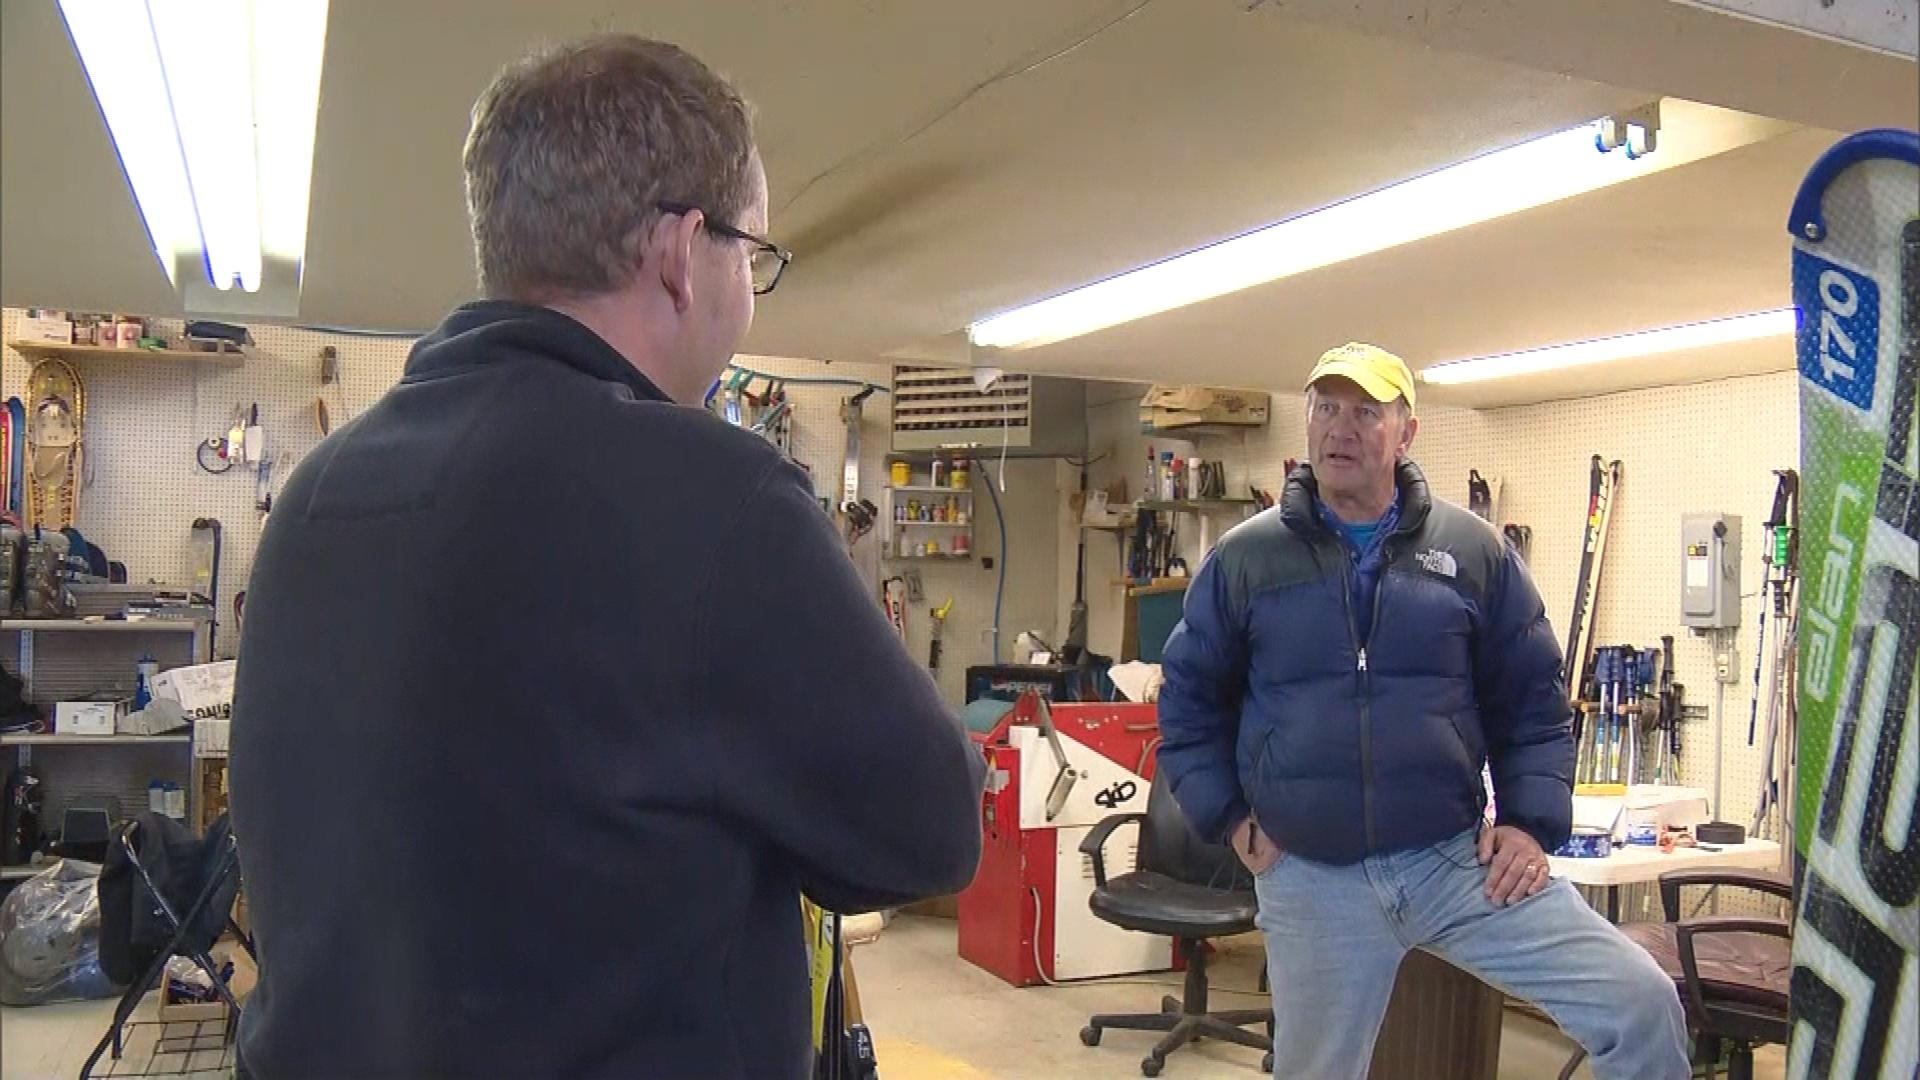 CBS4's Matt Kroschel interviews Paul Cooper (credit: CBS)